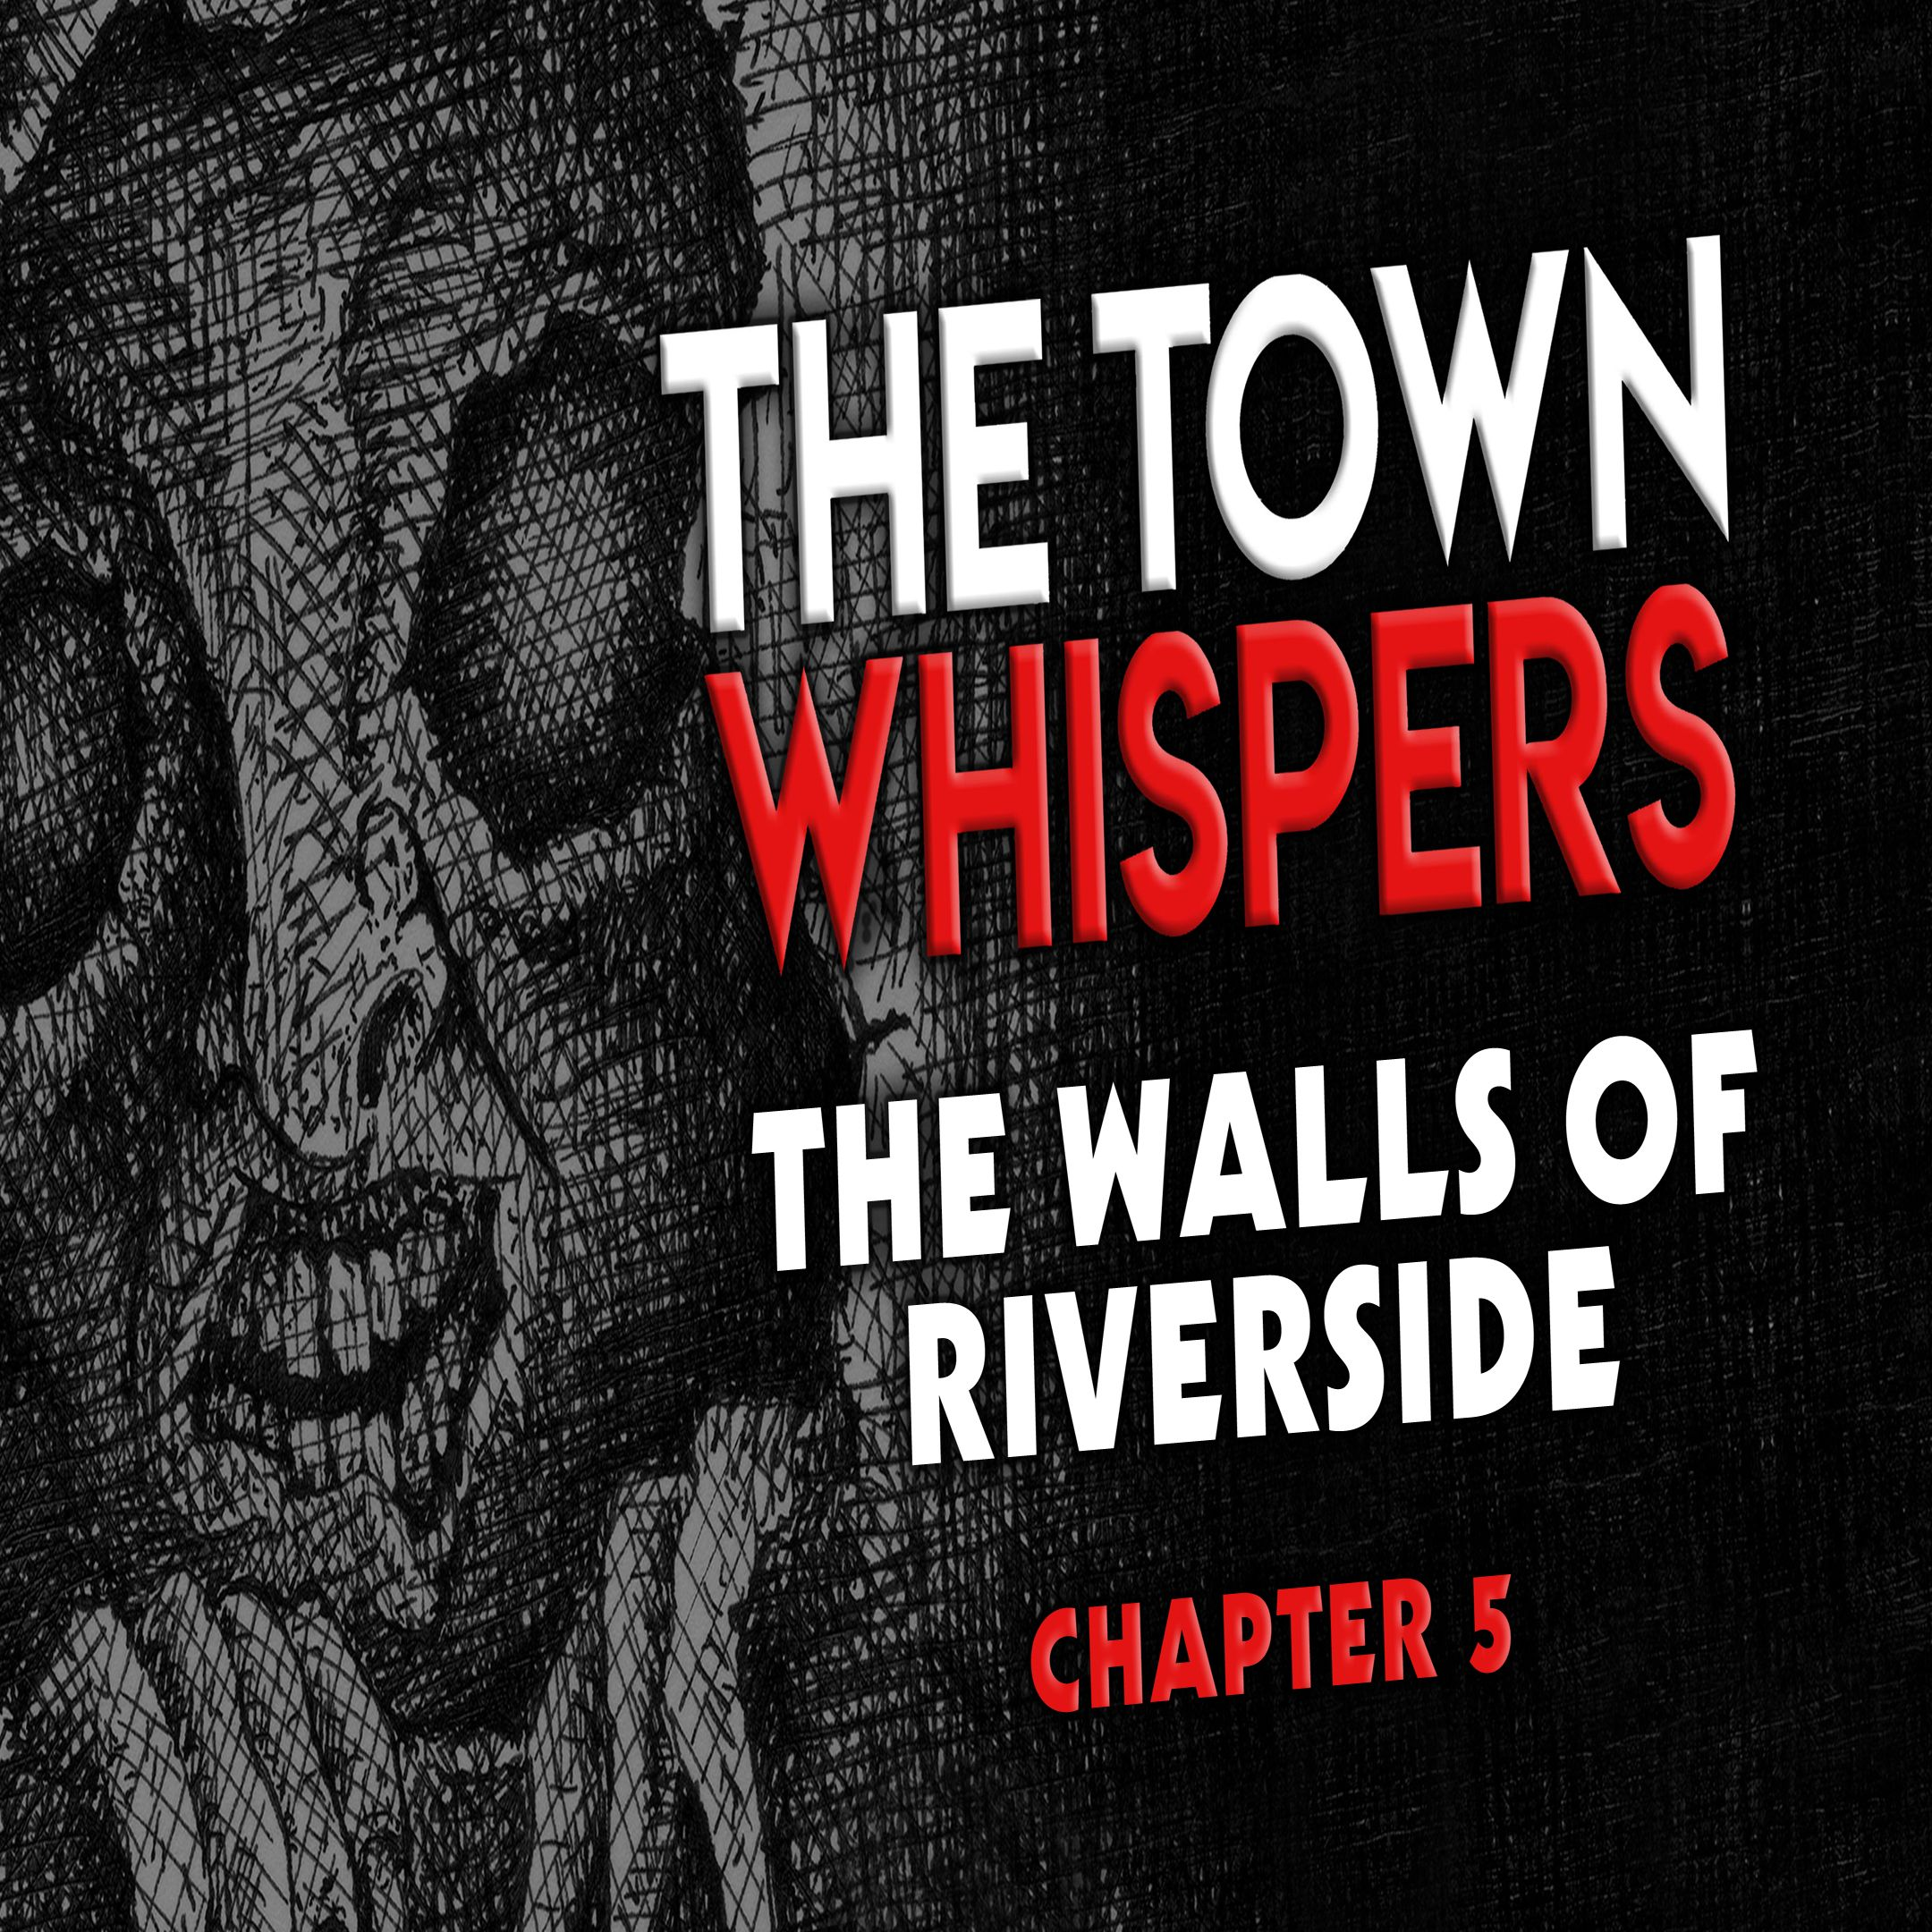 Chapter 5: The Walls of Riverside